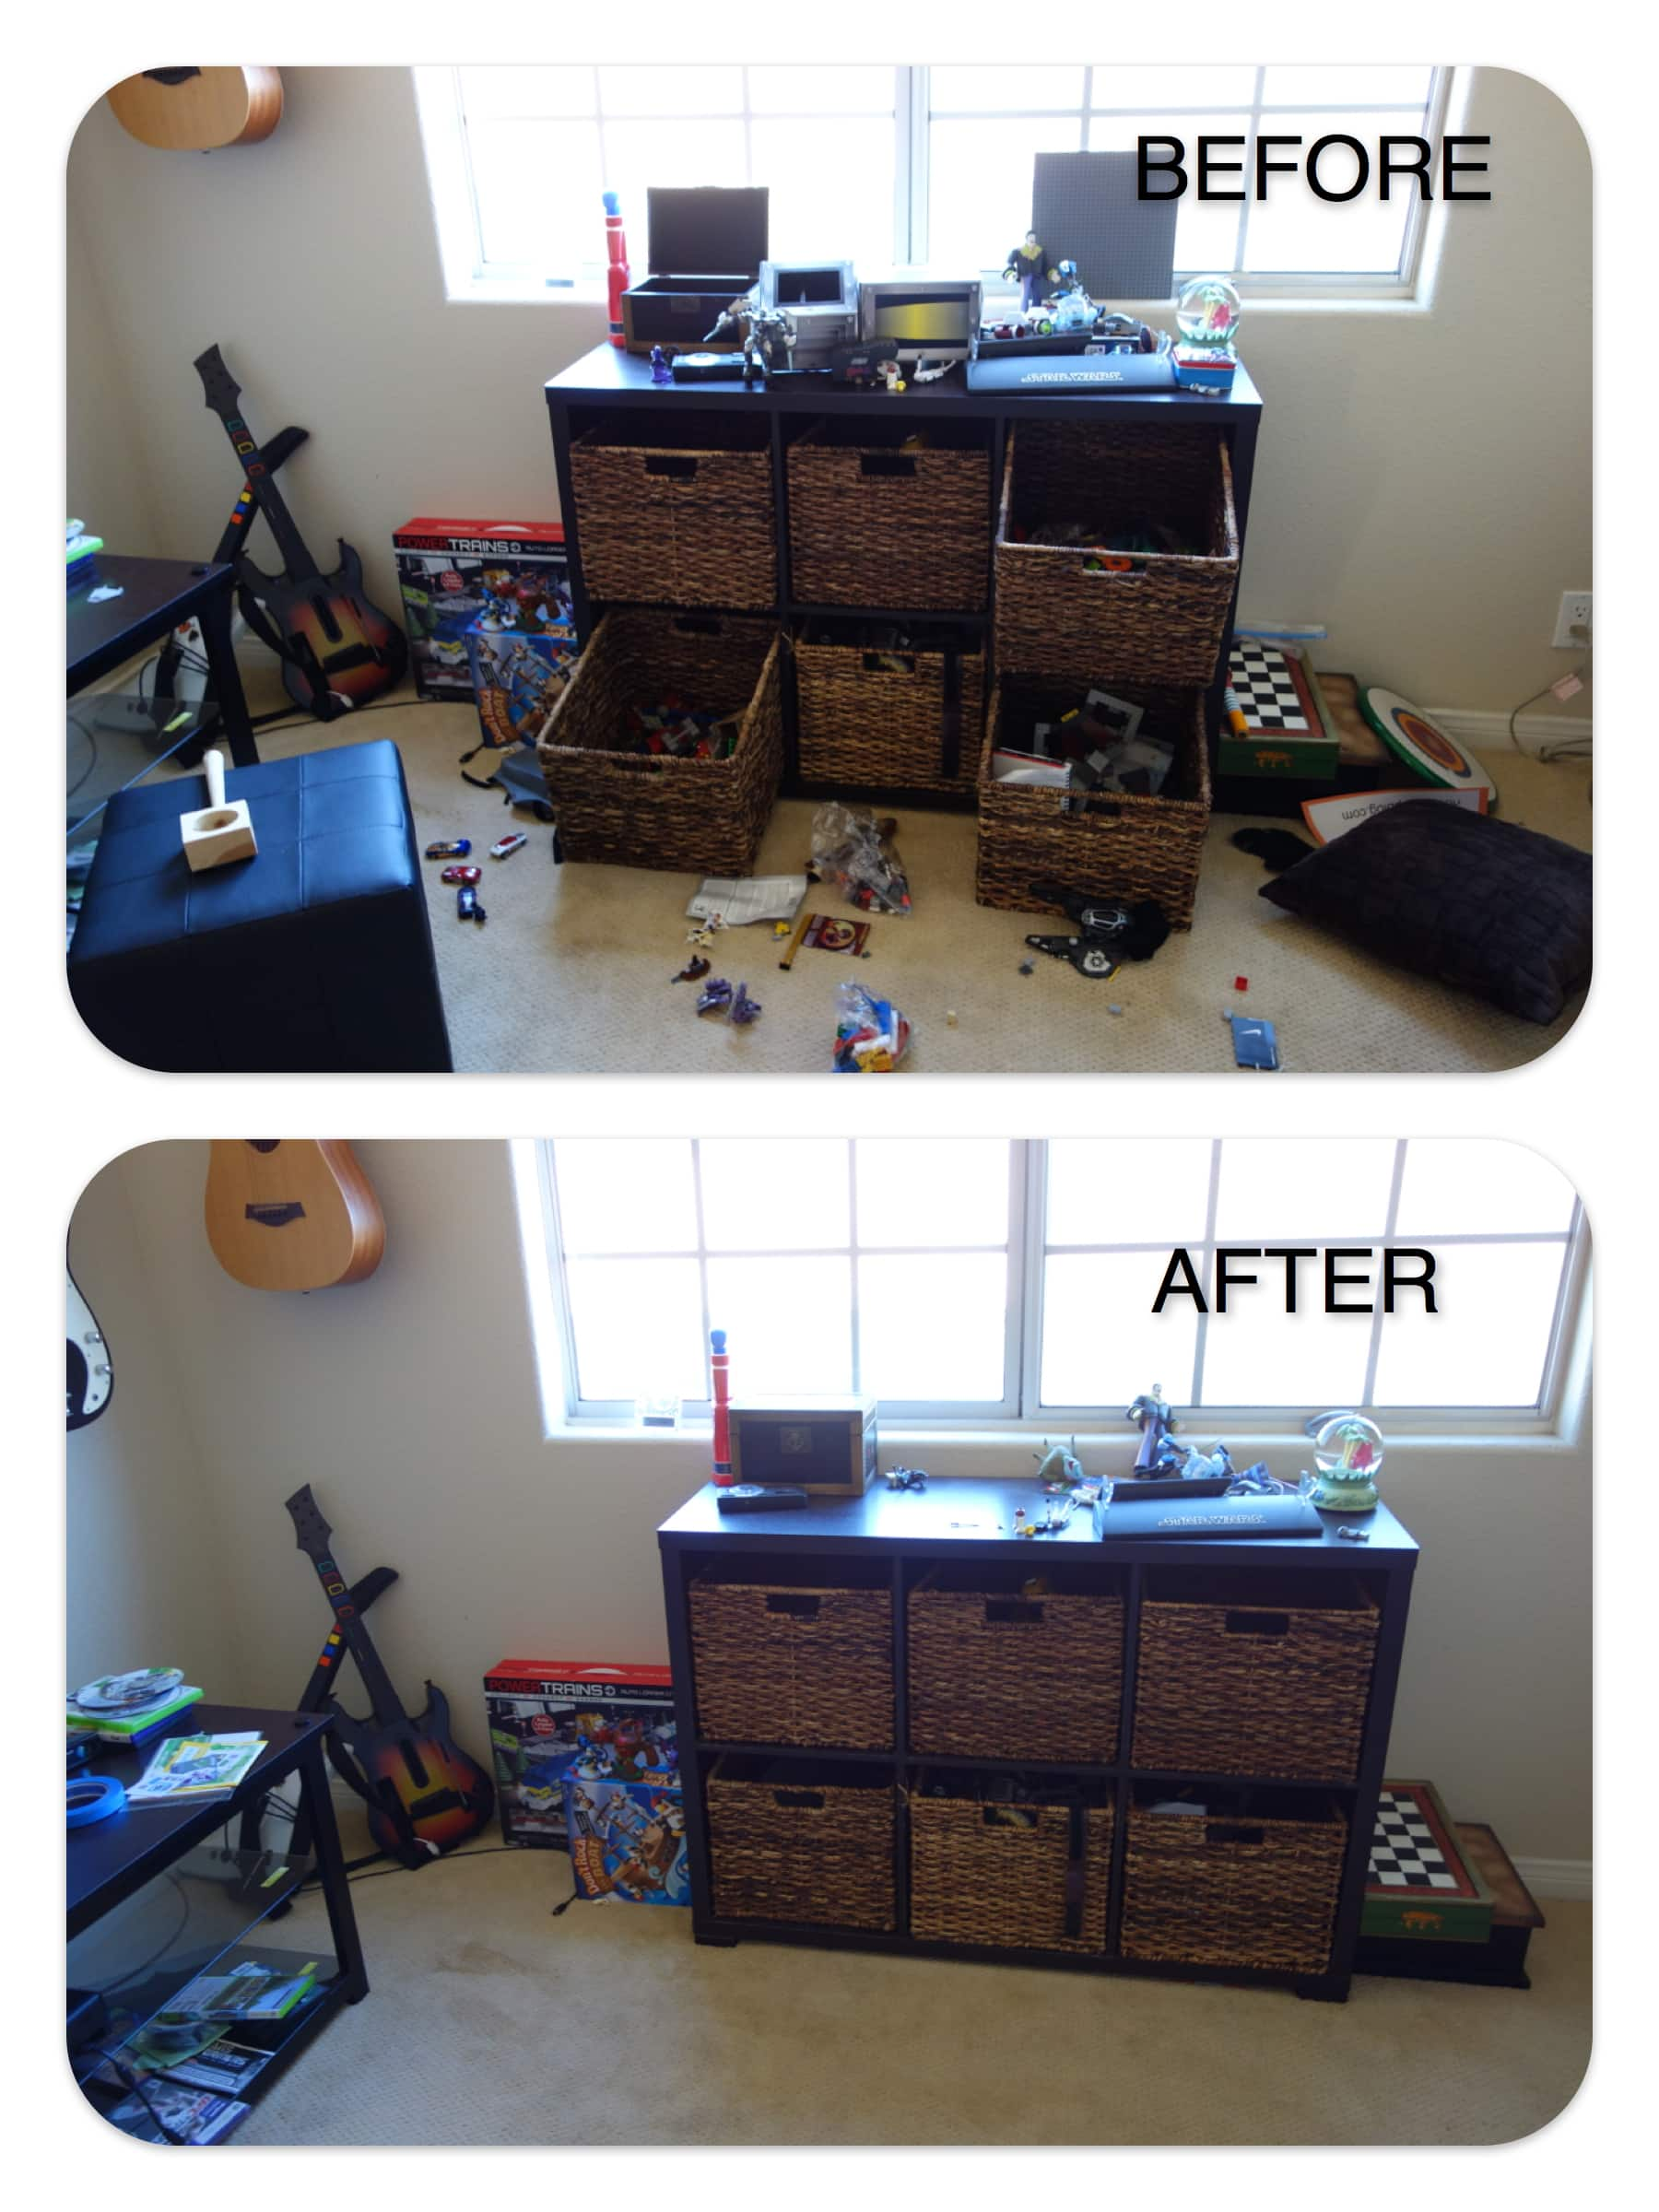 Before and After Results of Messy Toy Challenge